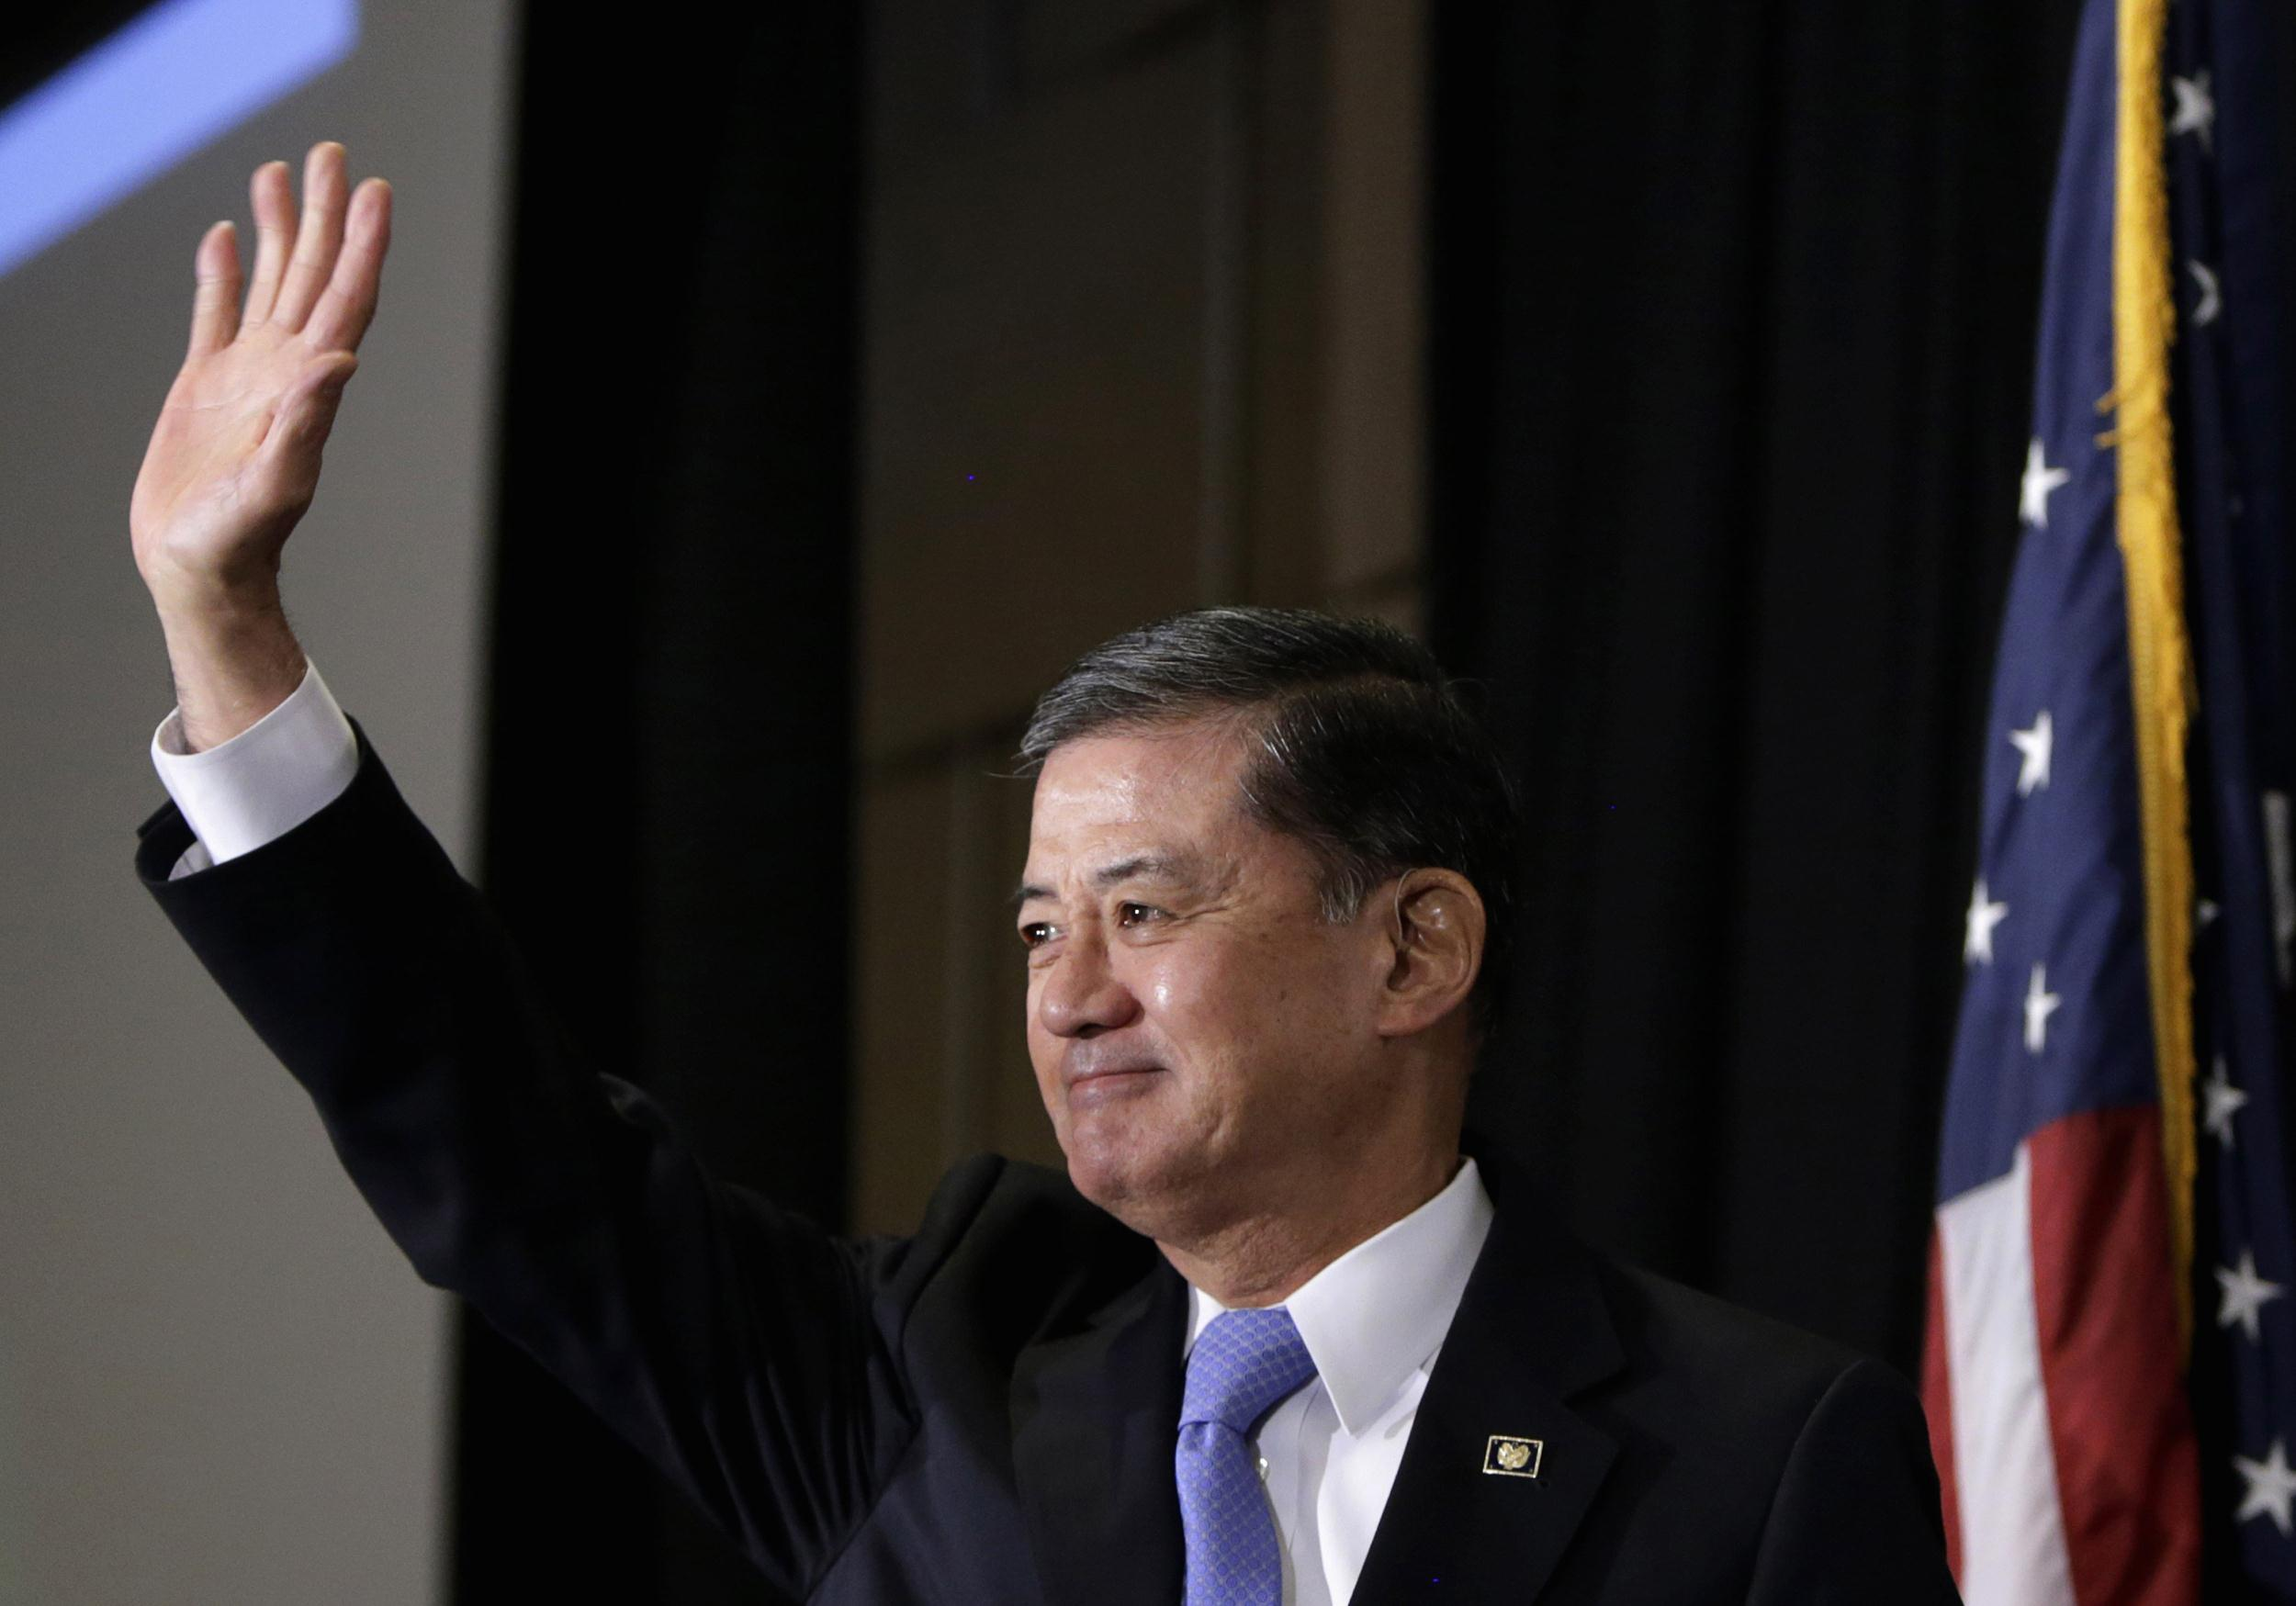 Image: United States Veterans Affairs Secretary Eric Shinseki arrives to address The National Coalition for Homeless Veterans conference in Washington